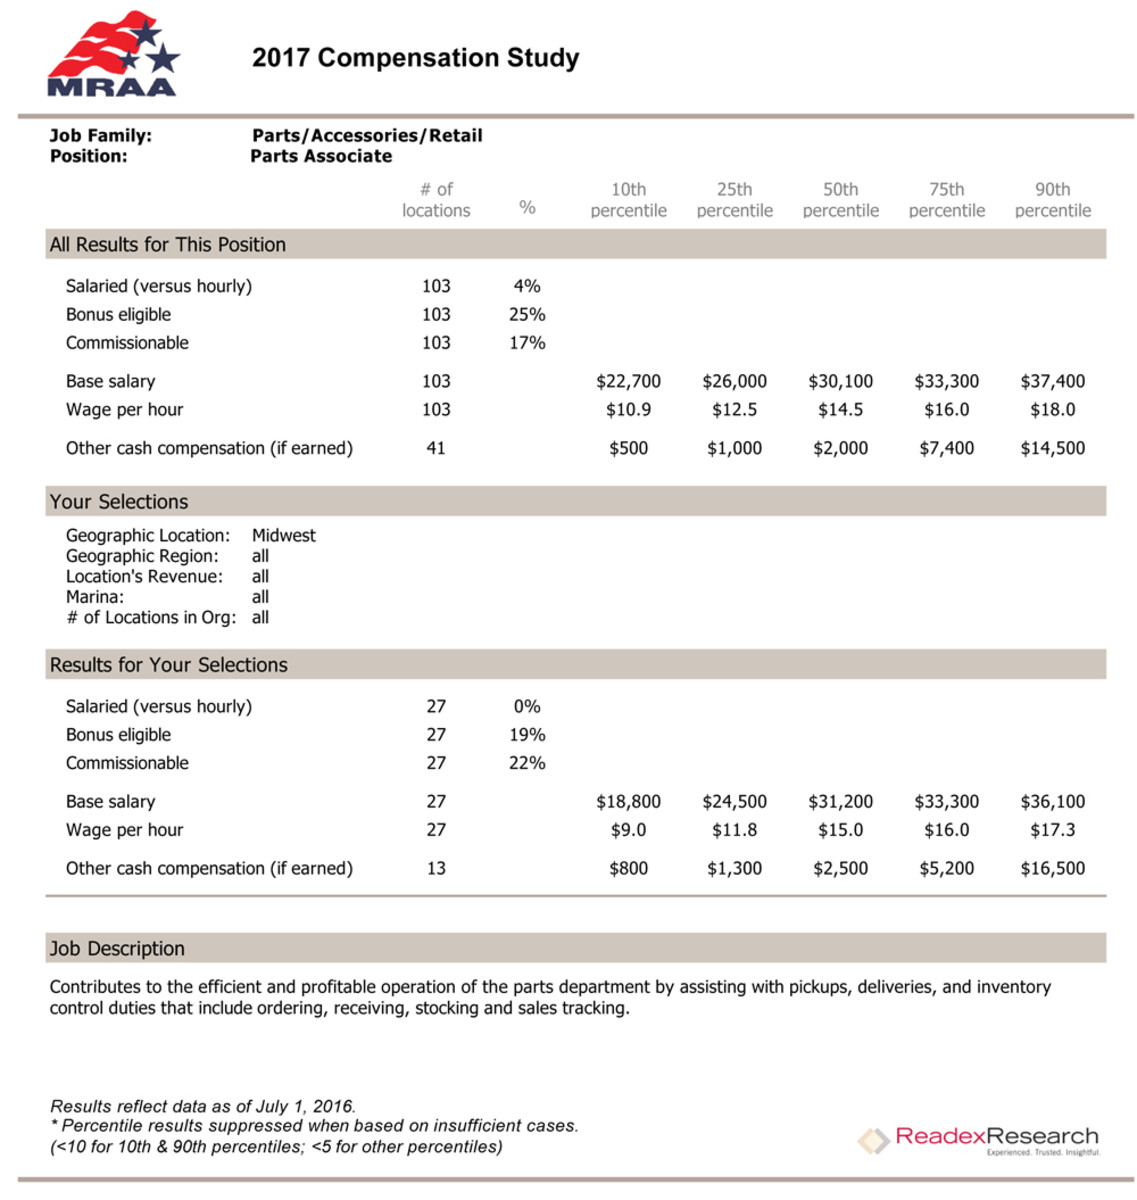 Here is a sample page from the MRAA's 2017 Compensation Study.